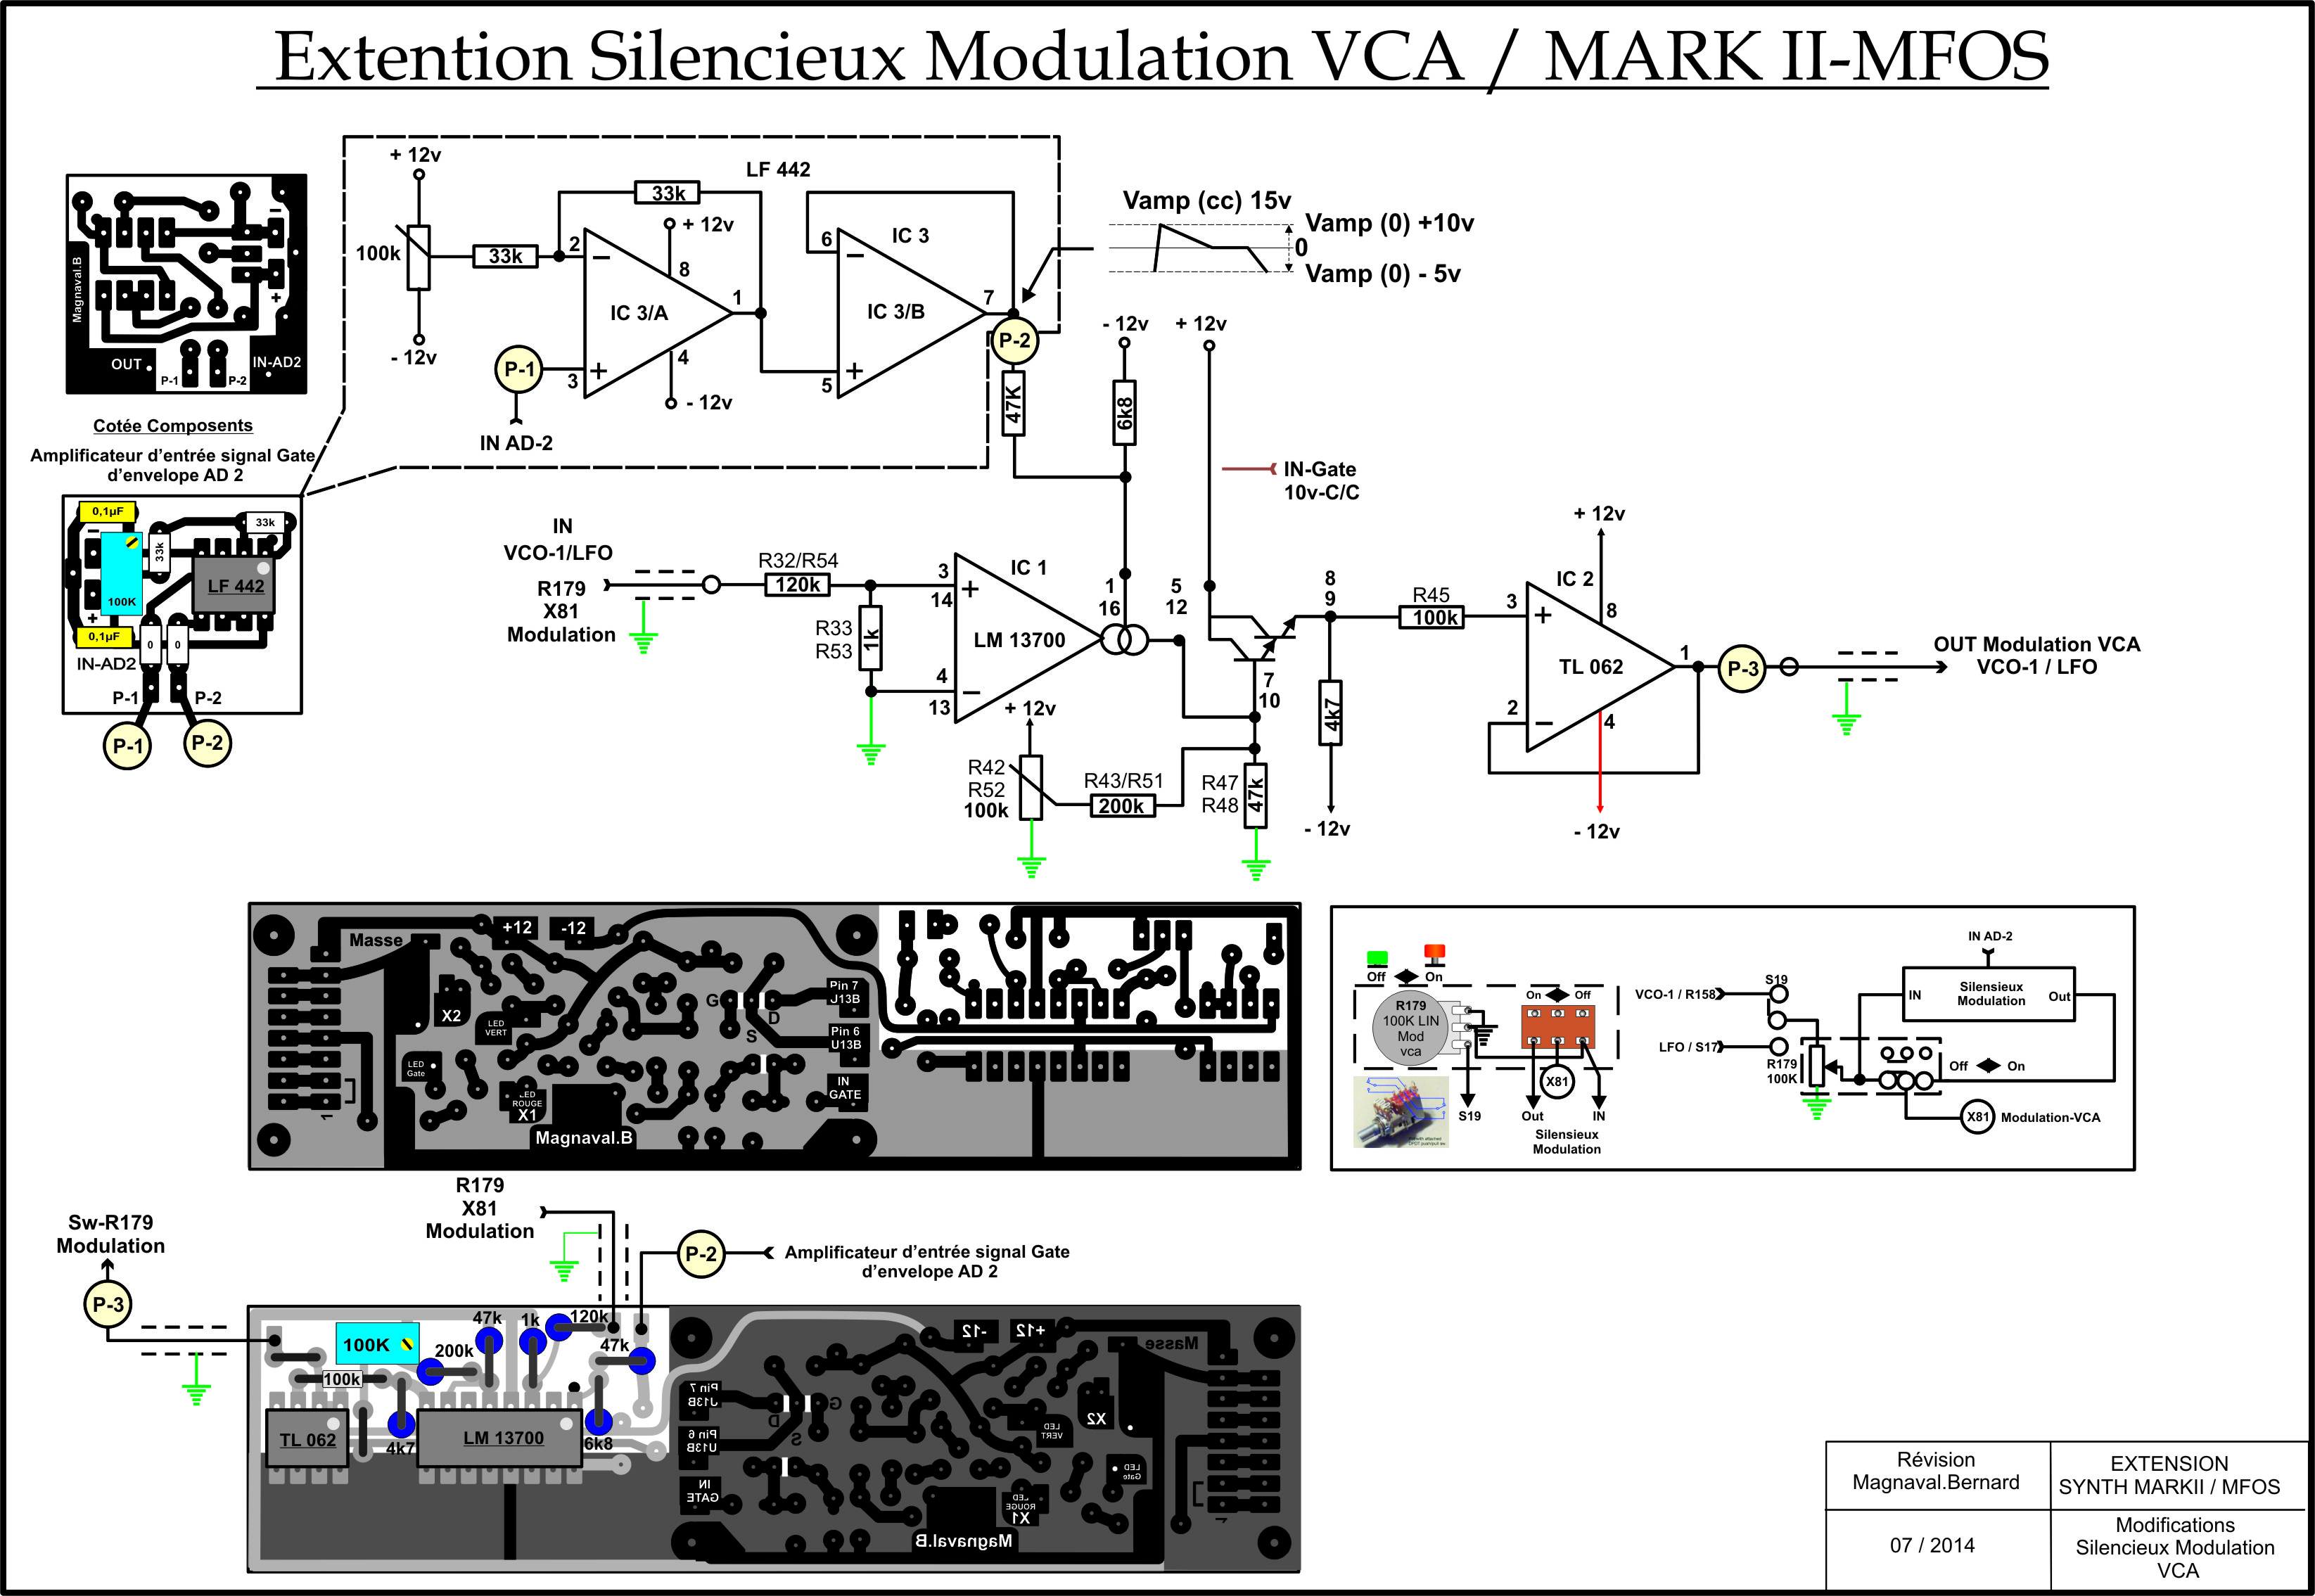 Extention silencieux VCA